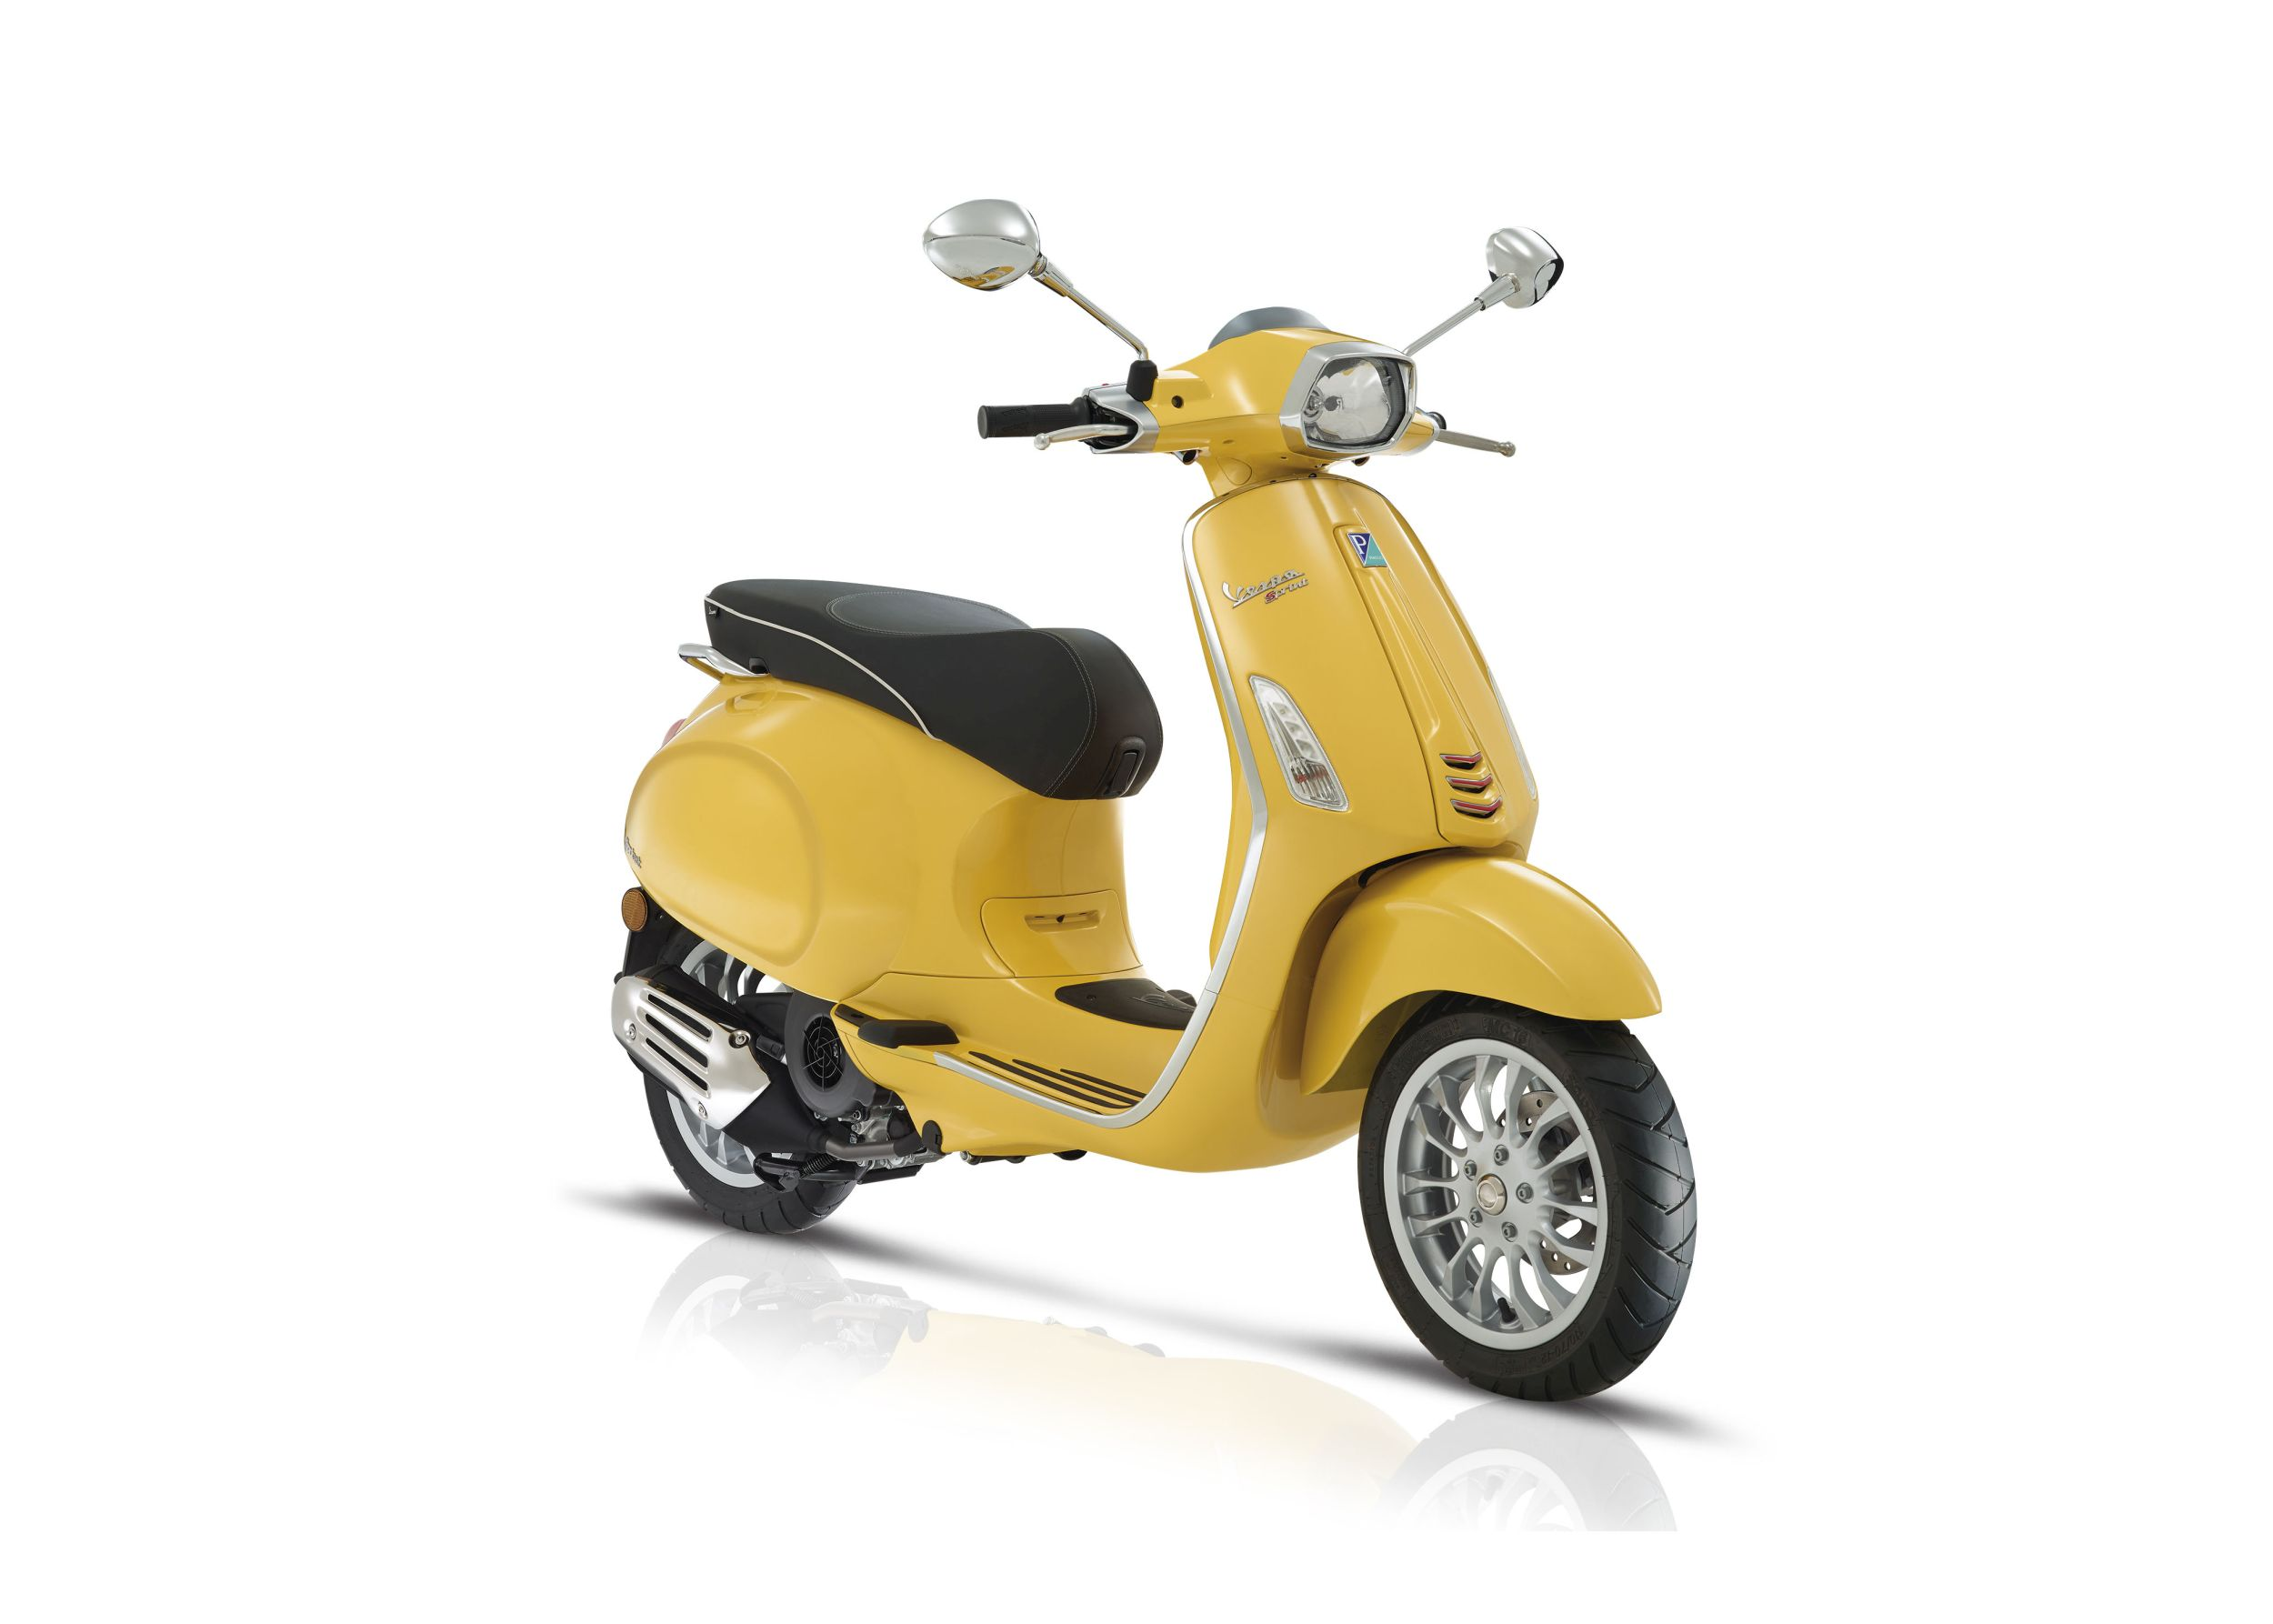 vespa sprint 50 2t all technical data of the model. Black Bedroom Furniture Sets. Home Design Ideas